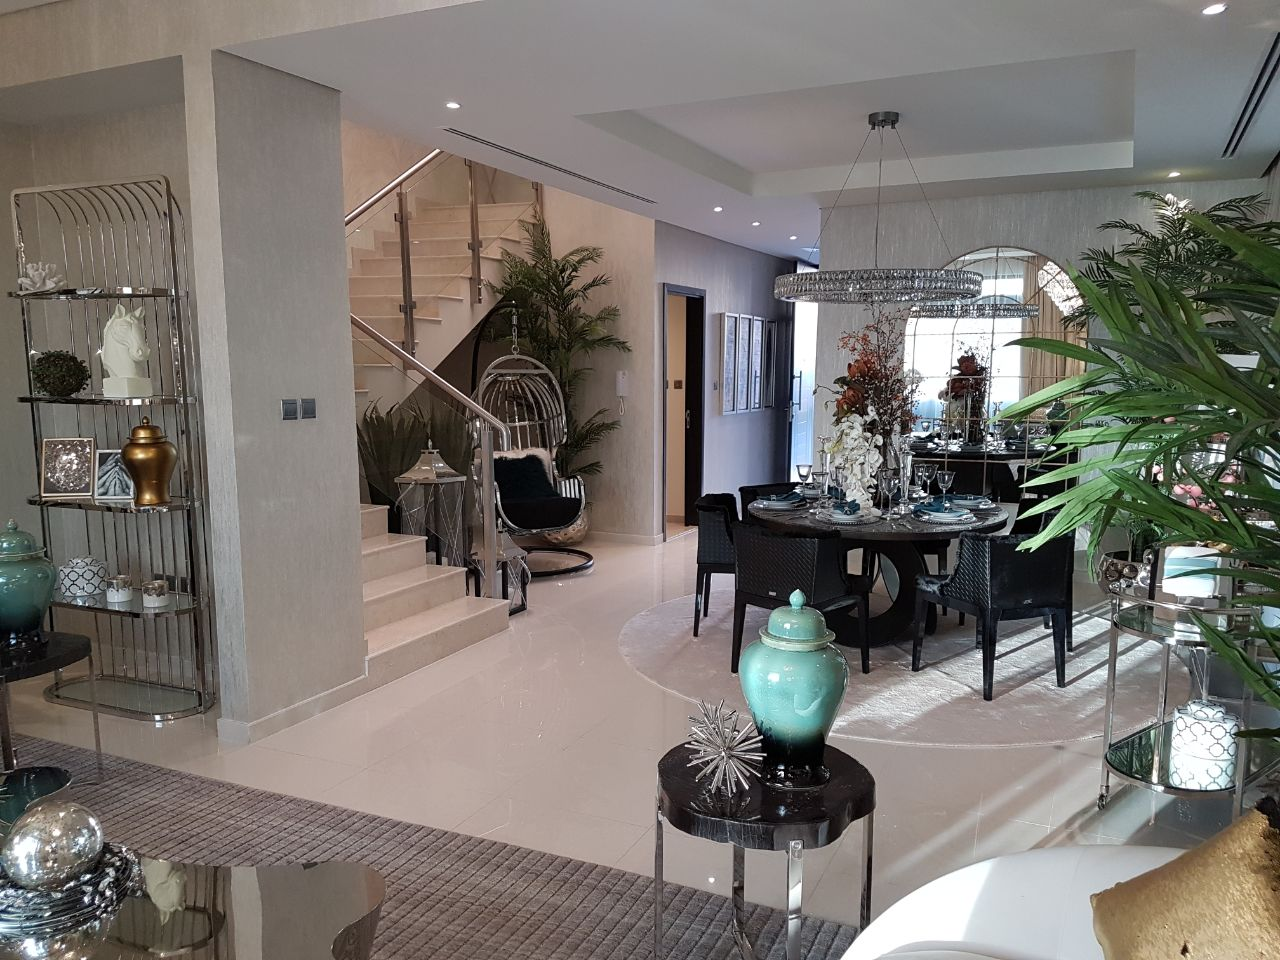 3 beds Villa in Dubai with $273,000 only!!